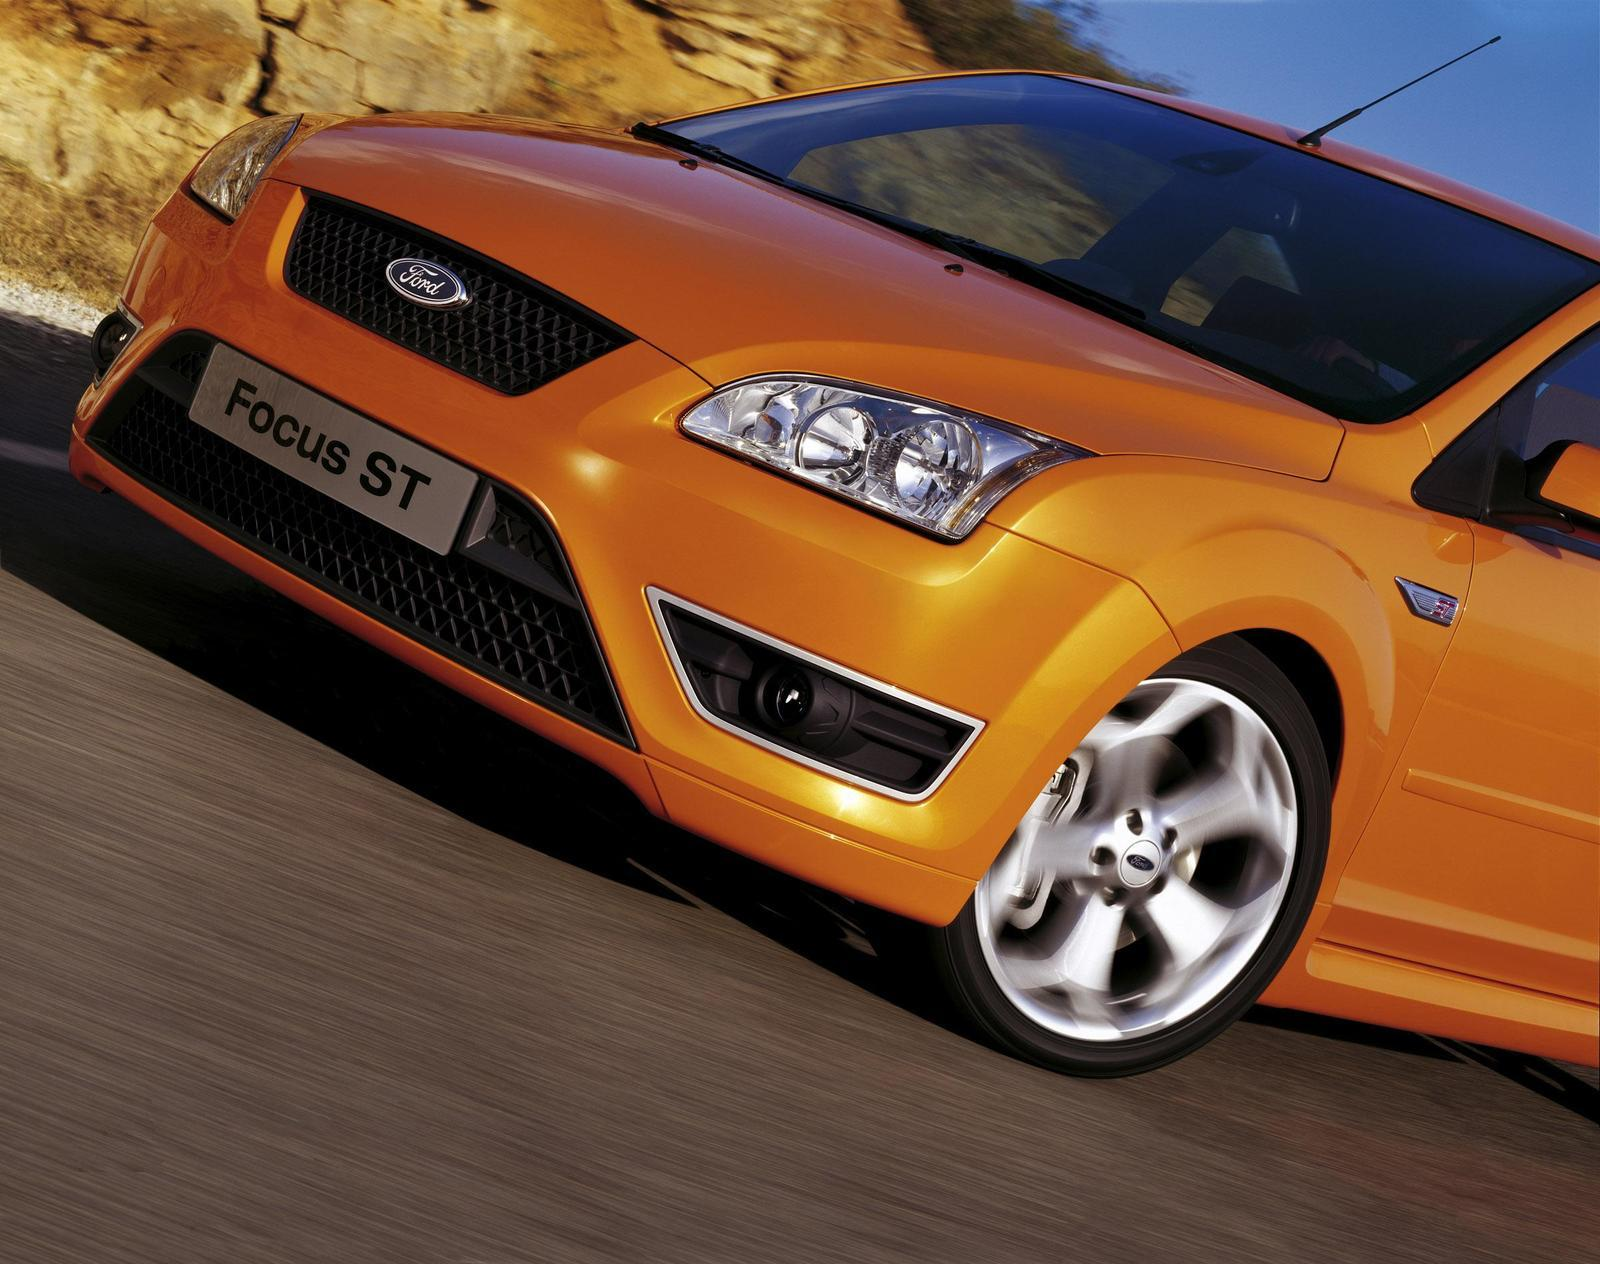 2007 ford focus st picture 154062 car review top speed. Black Bedroom Furniture Sets. Home Design Ideas